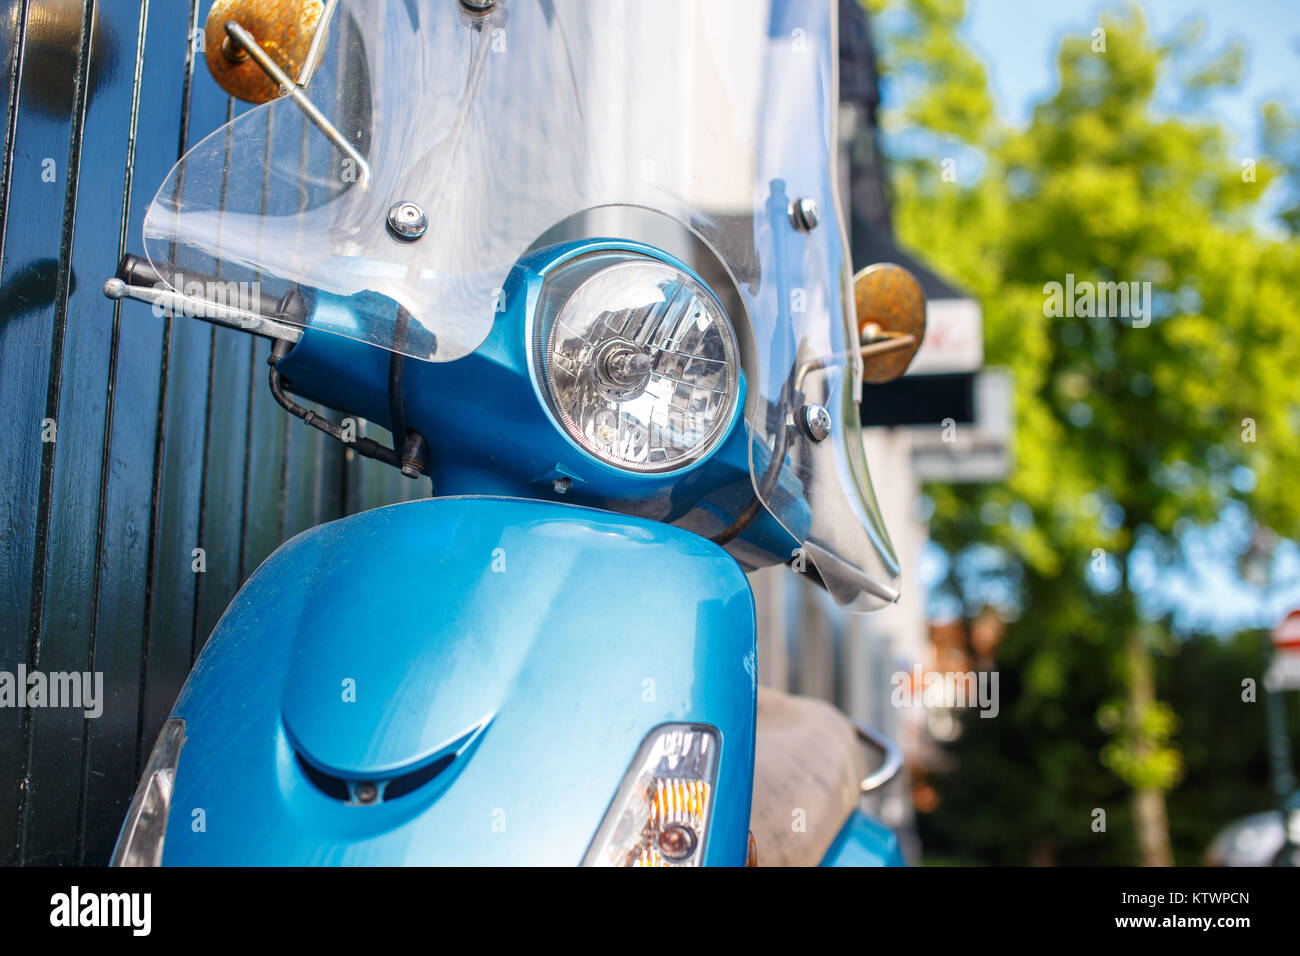 Modern scooted on the street. - Stock Image